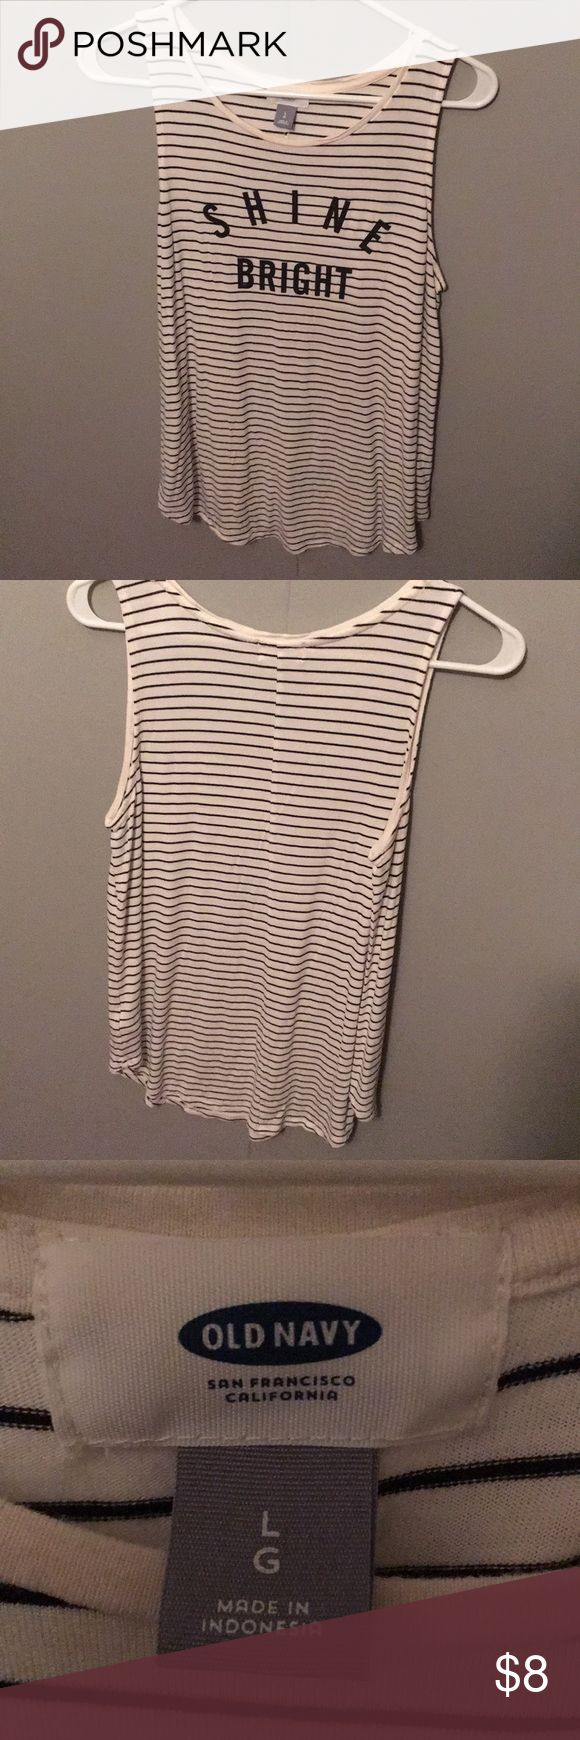 Large White and black striped old navy tank top Large White and black striped old navy tank top with shine bright in black on front. Old Navy Tops Tank Tops